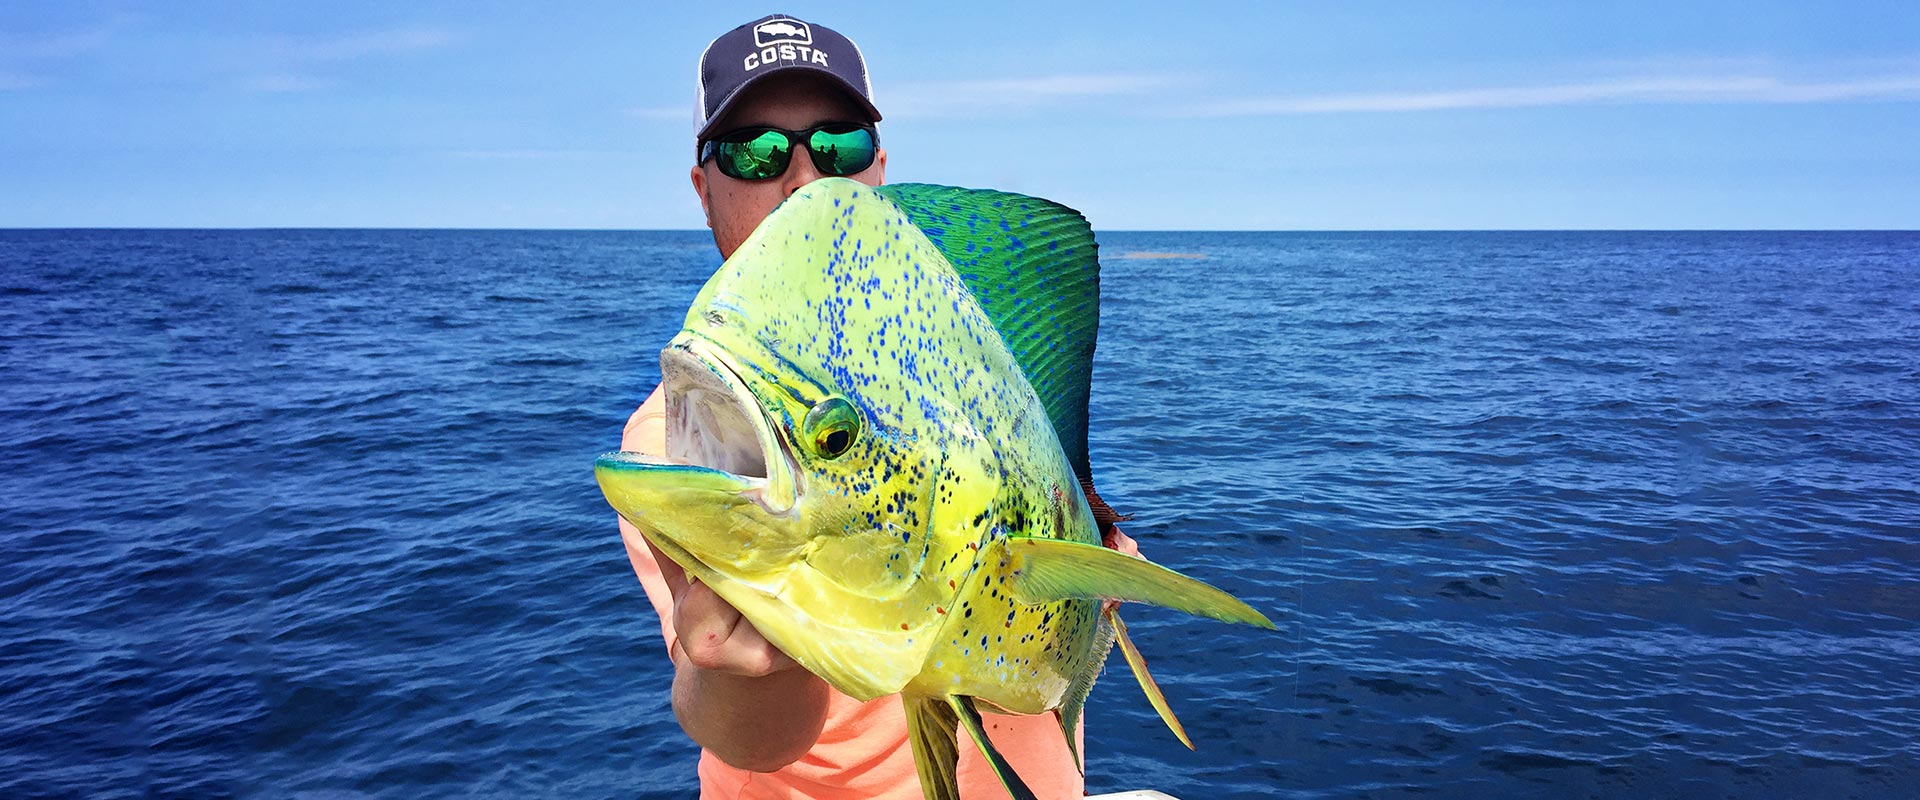 Deep sea fishing charters cape canaveral cocoa beach for Best deep sea fishing in florida